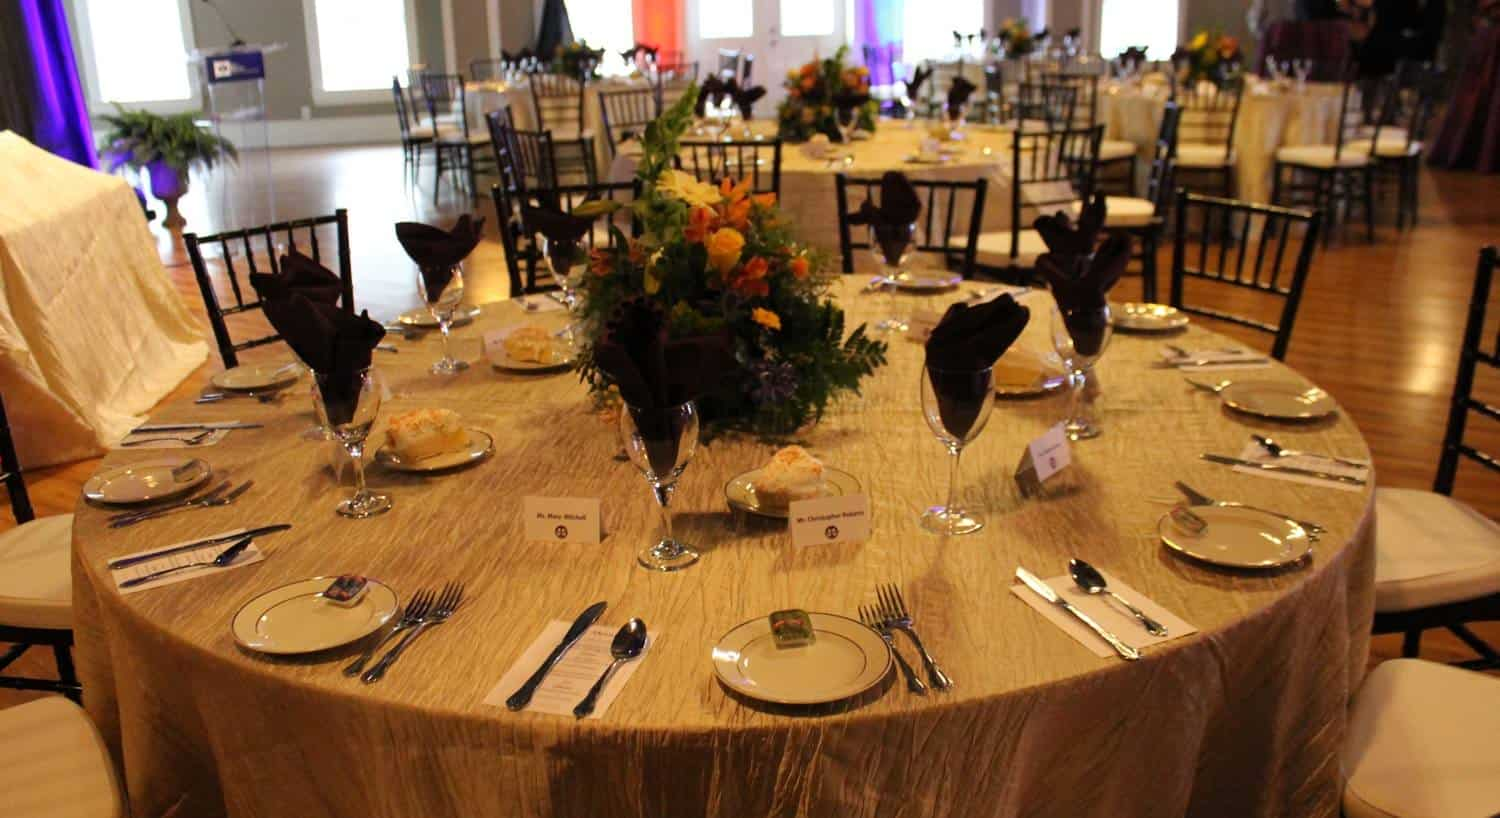 Ballroom with round tables topped with cloths, fresh flowers, and set for eight